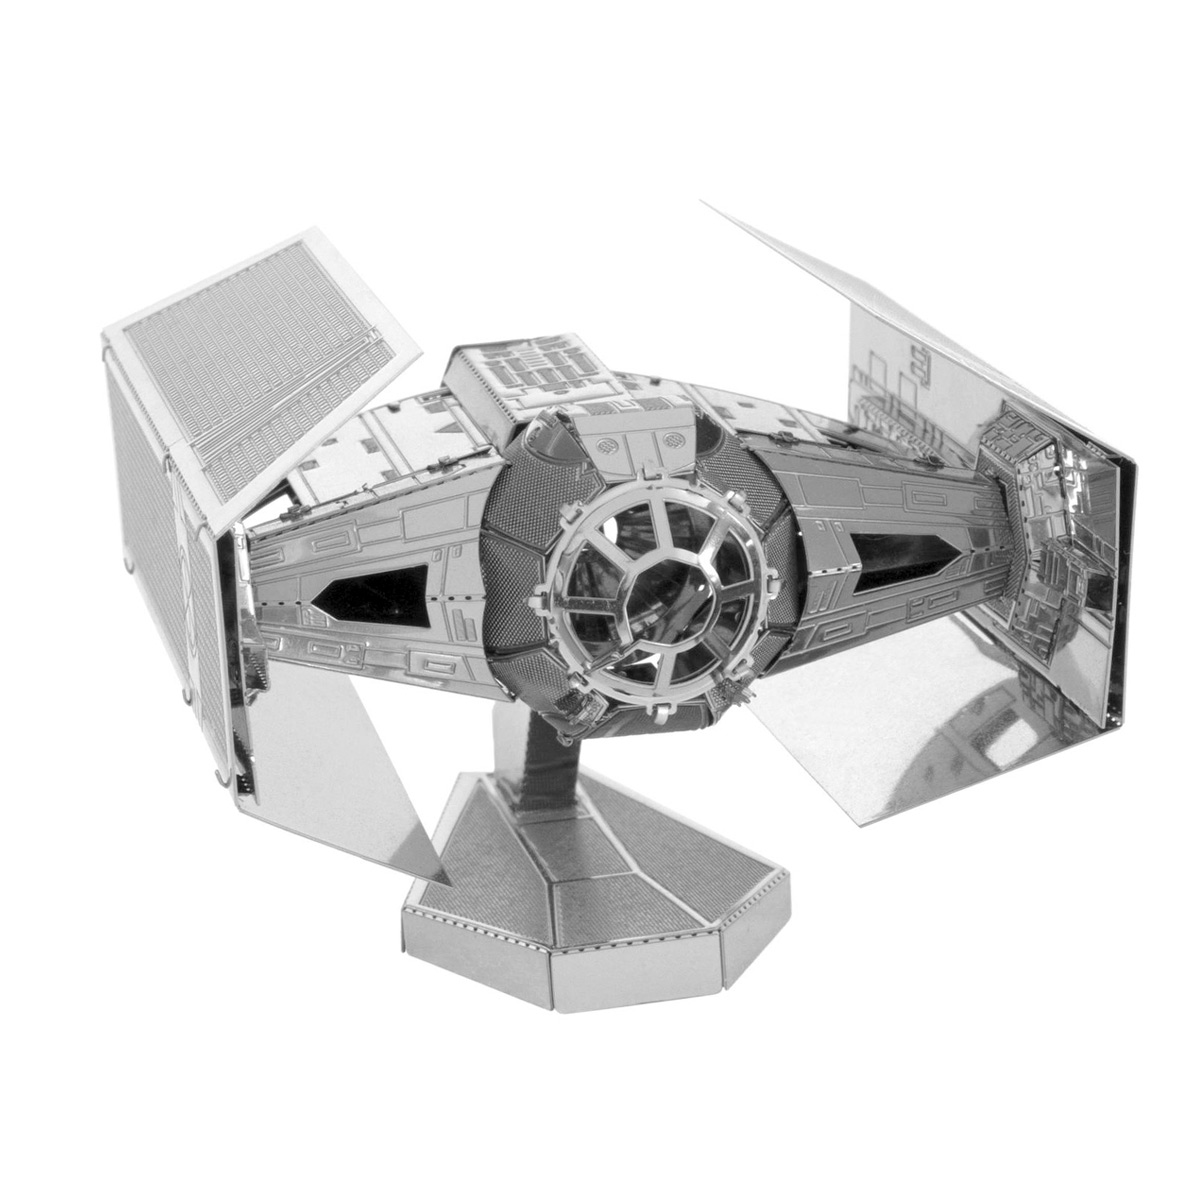 Kovový model Tie Advanced - stíhačka Darth Vadera